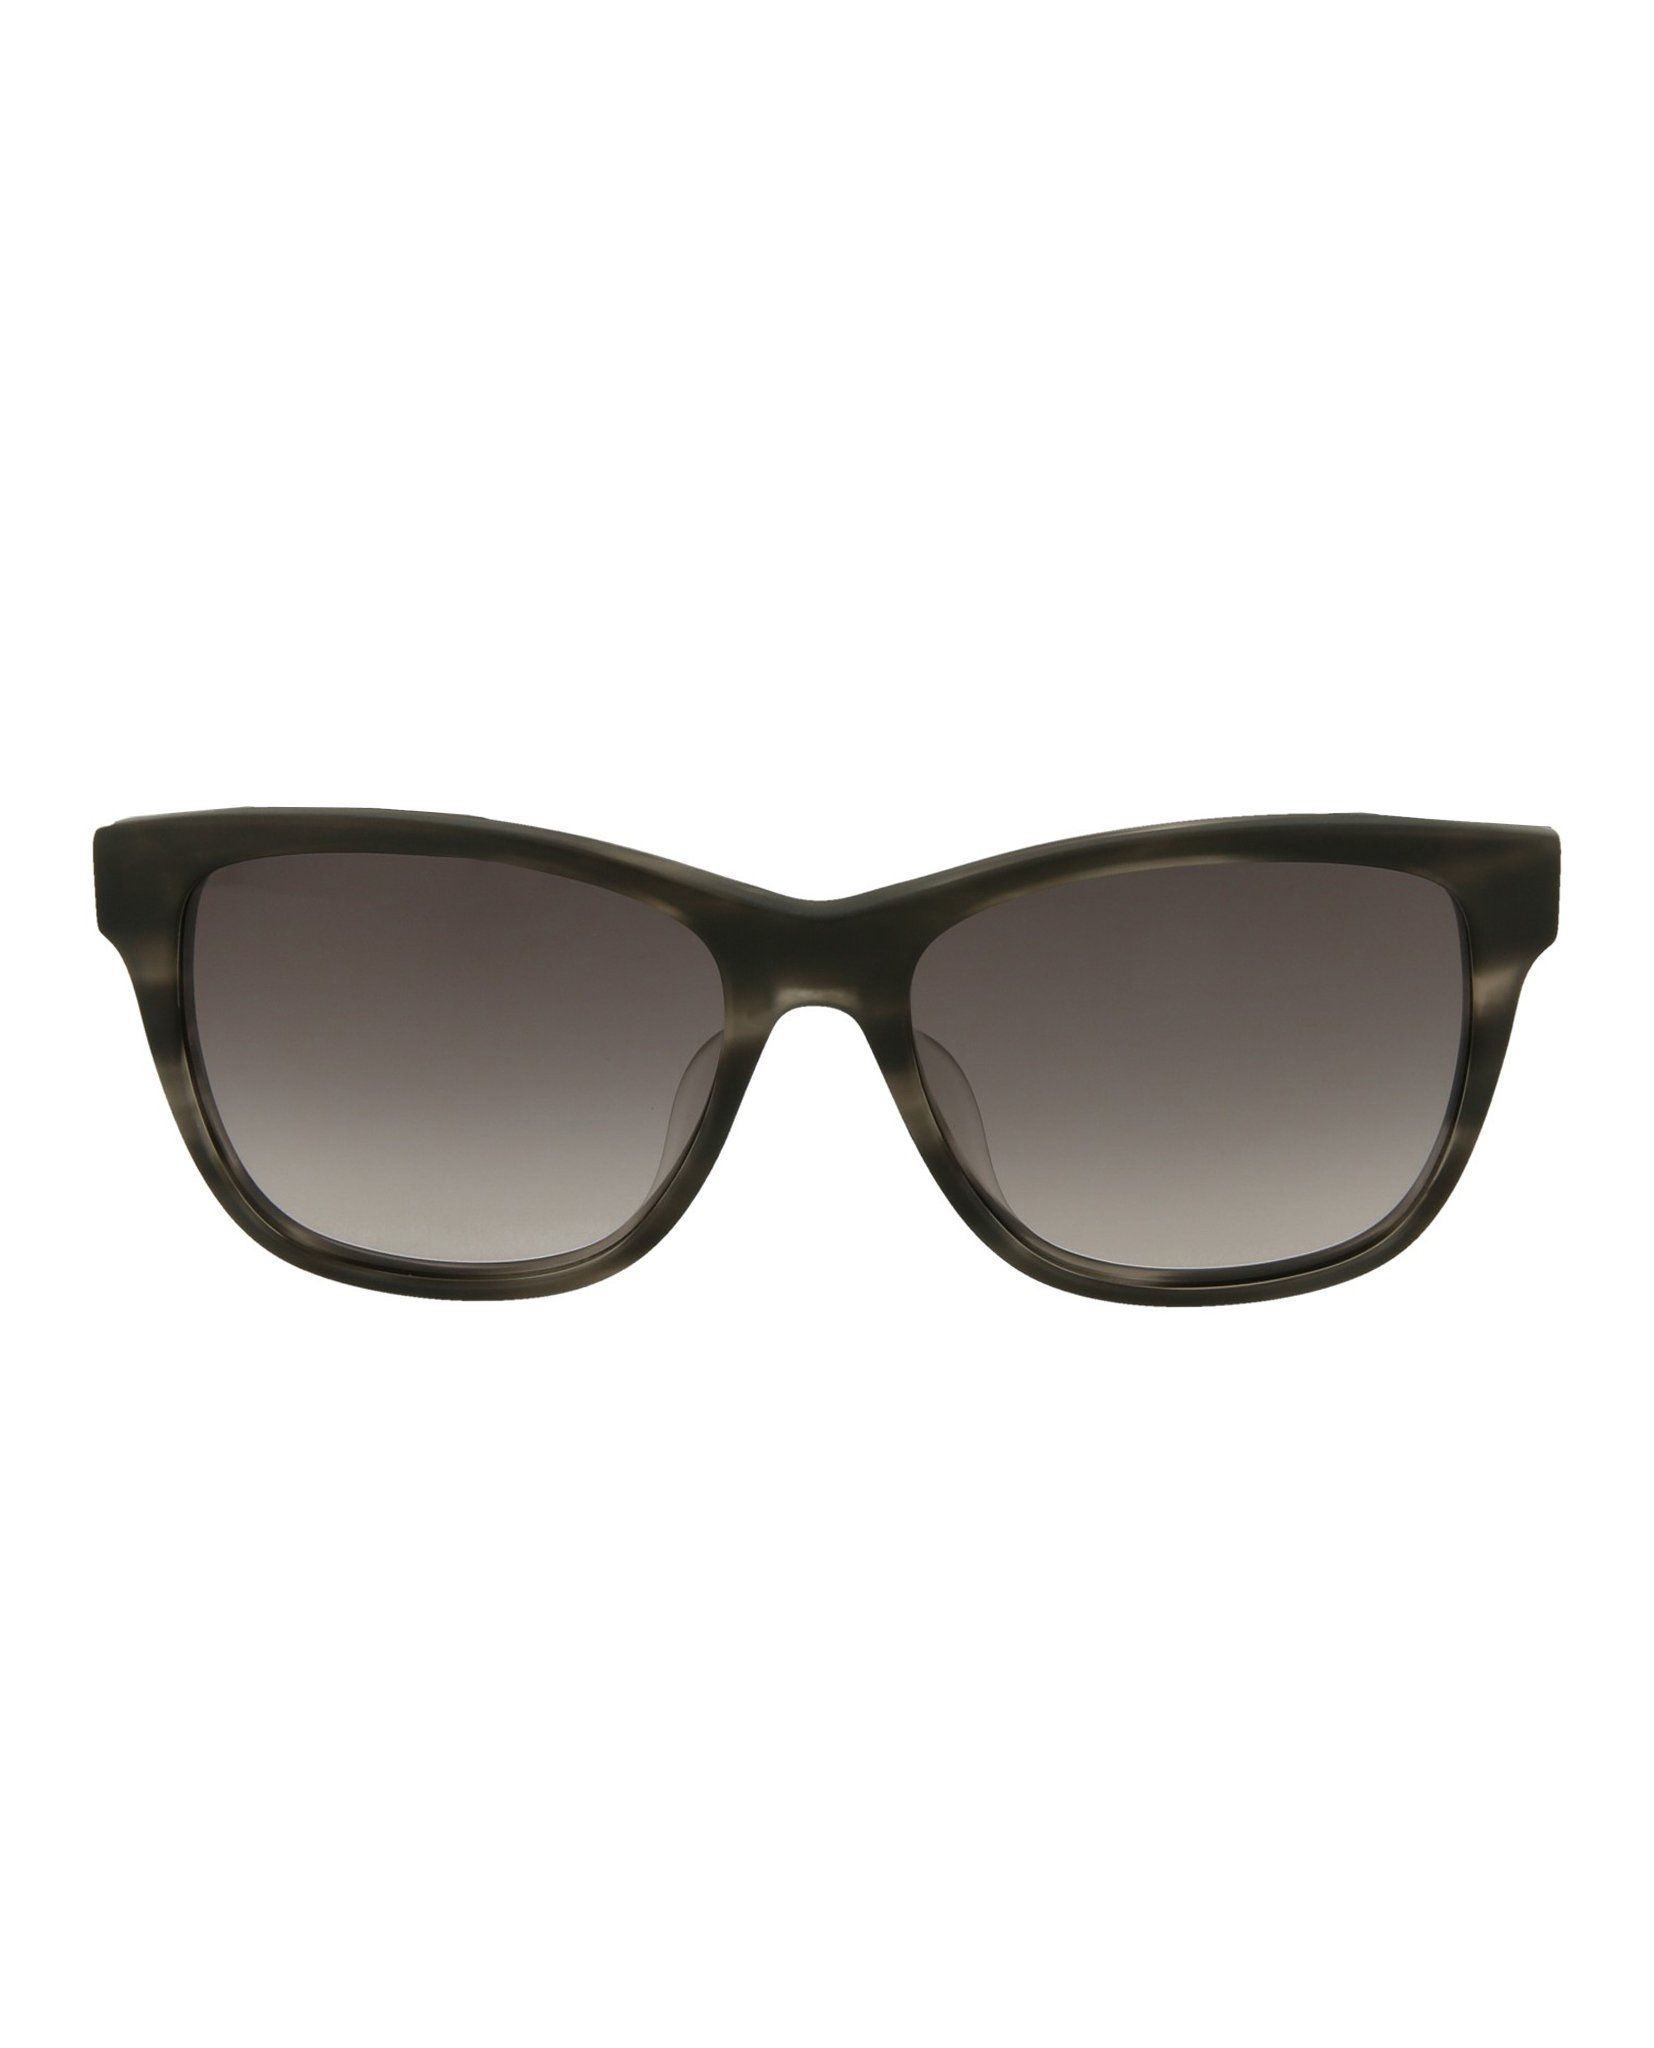 c1bd1d1287e Bottega Veneta 55MM Rectangle Sunglasses